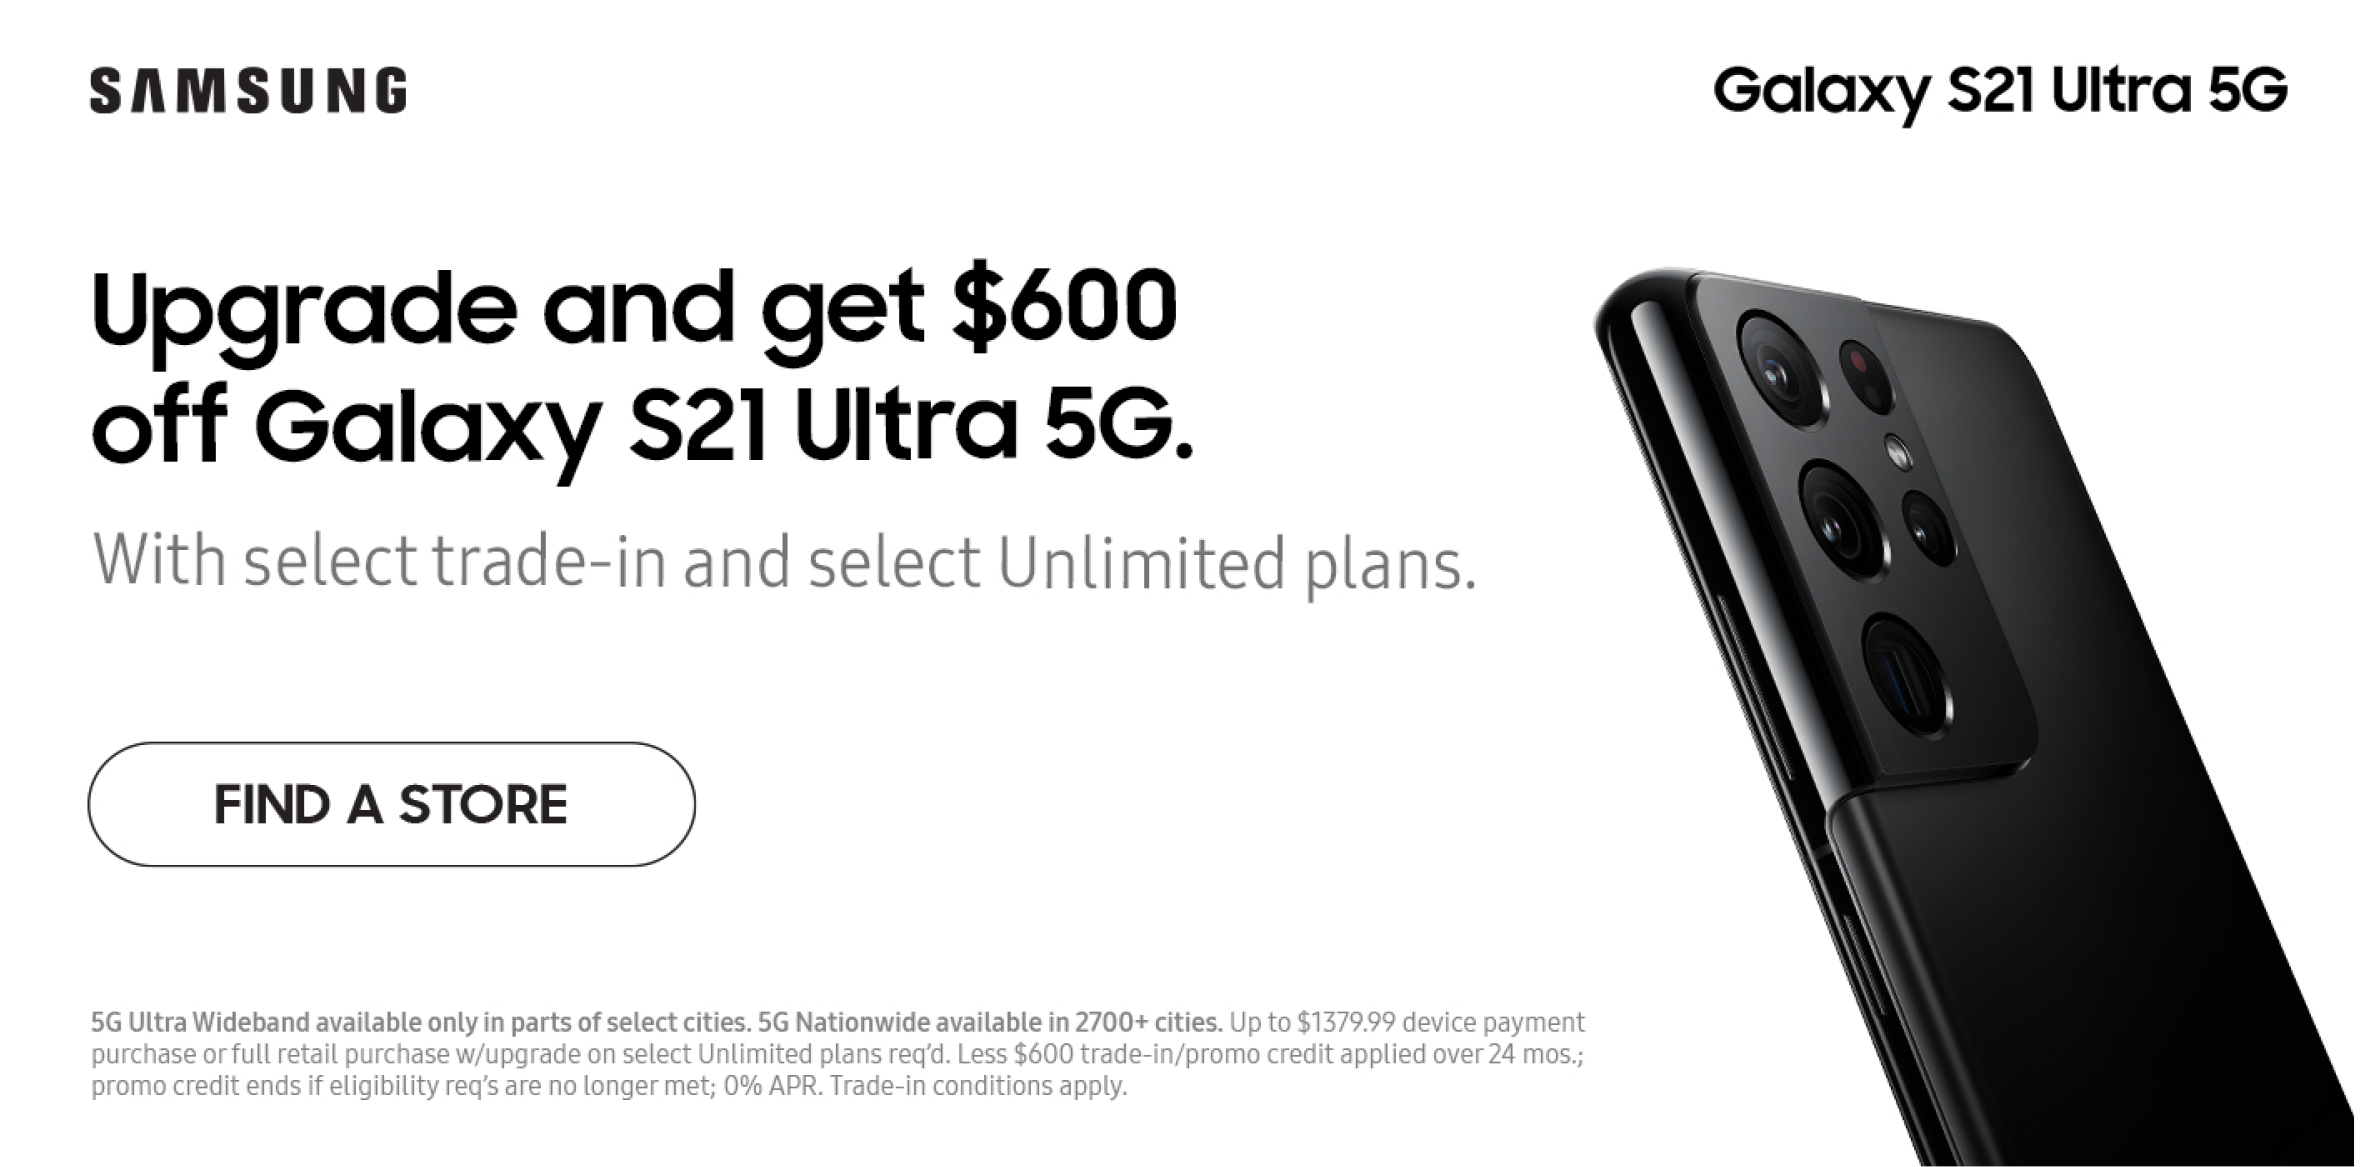 Get $600 off when you upgrade to the Galaxy S21 Ultra 5G.